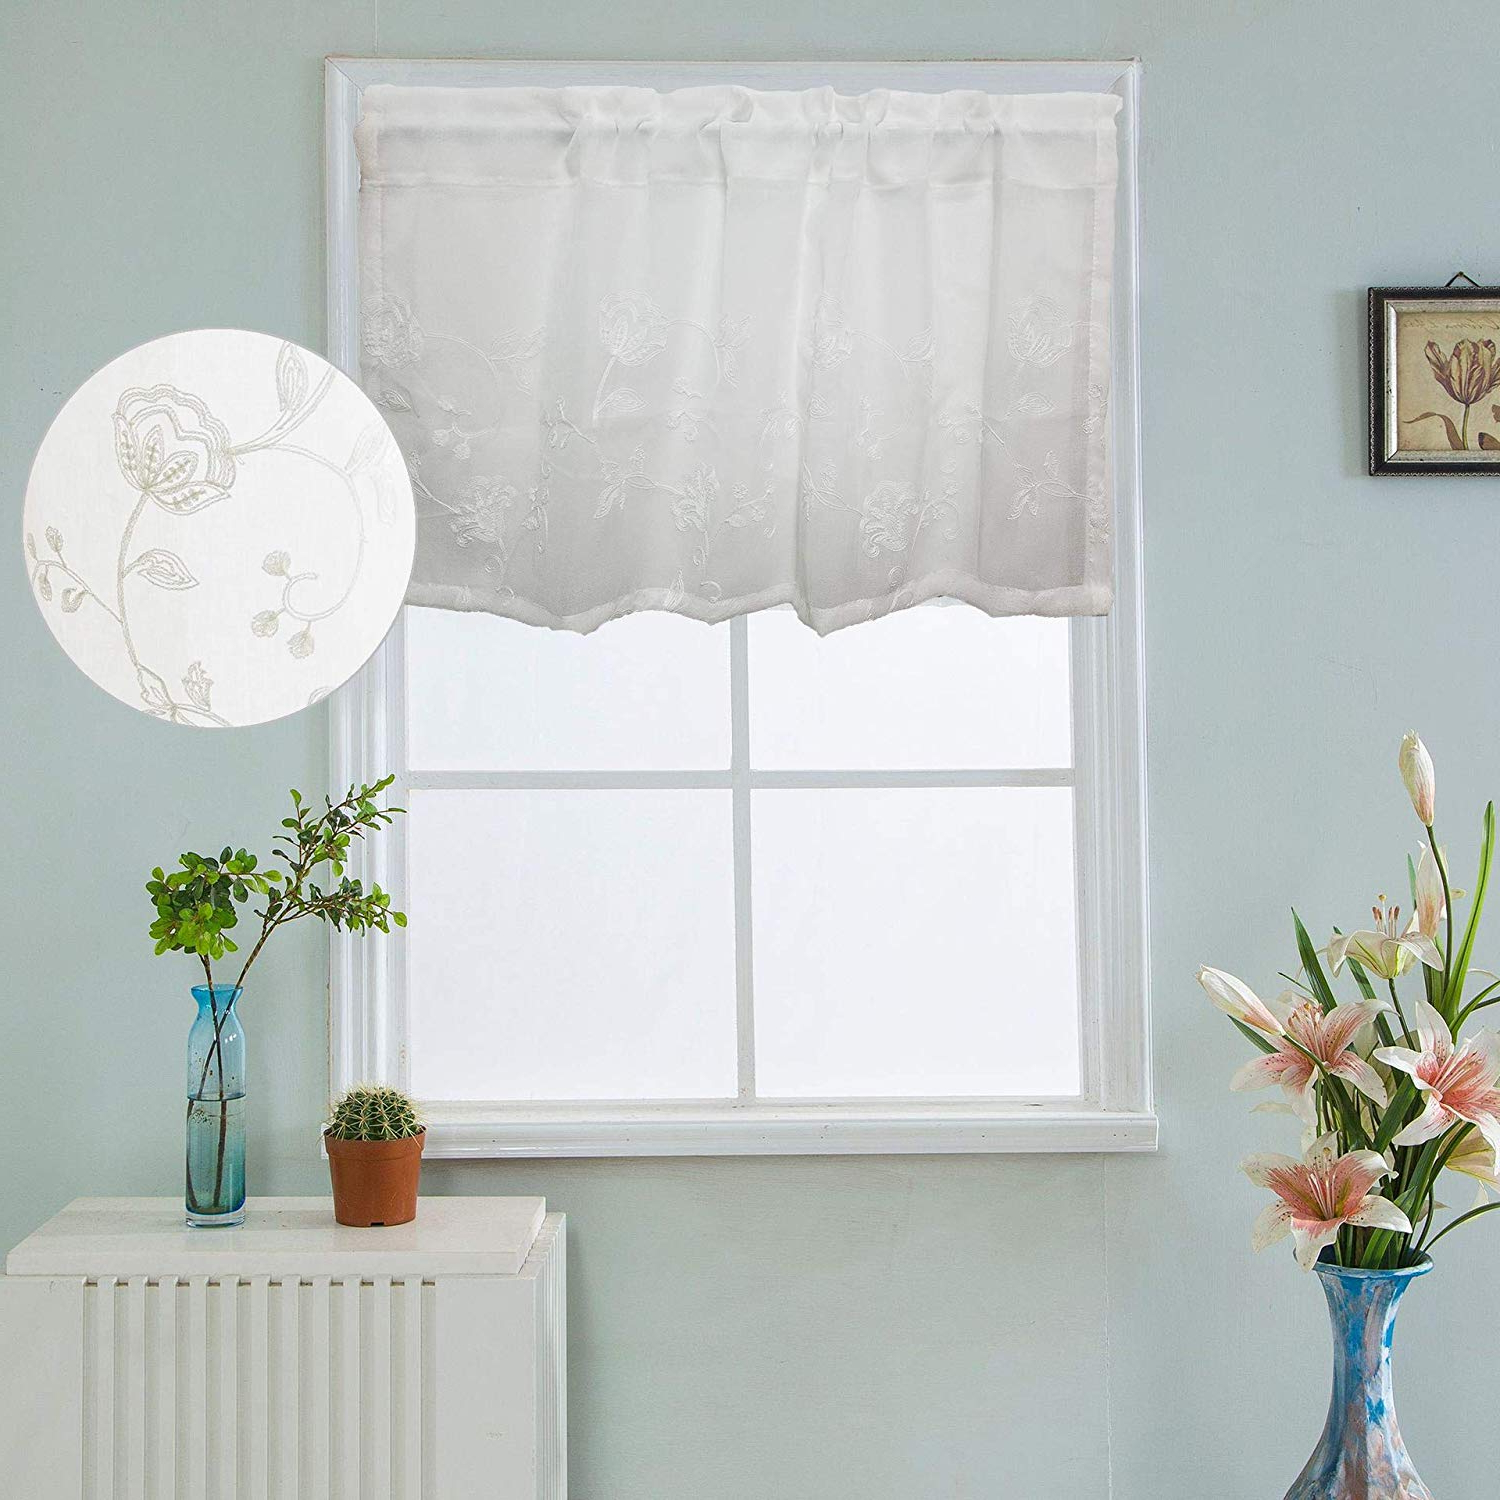 Floral Lace Rod Pocket Kitchen Curtain Valance And Tiers Sets Intended For Preferred Winyy White Floral Sheer Curtain Rod Pocket Top Window Drape Short Curtain Valance For Kitchen Window 1 Piece (39 Inch Wide, 20 Inch Long) (View 2 of 20)